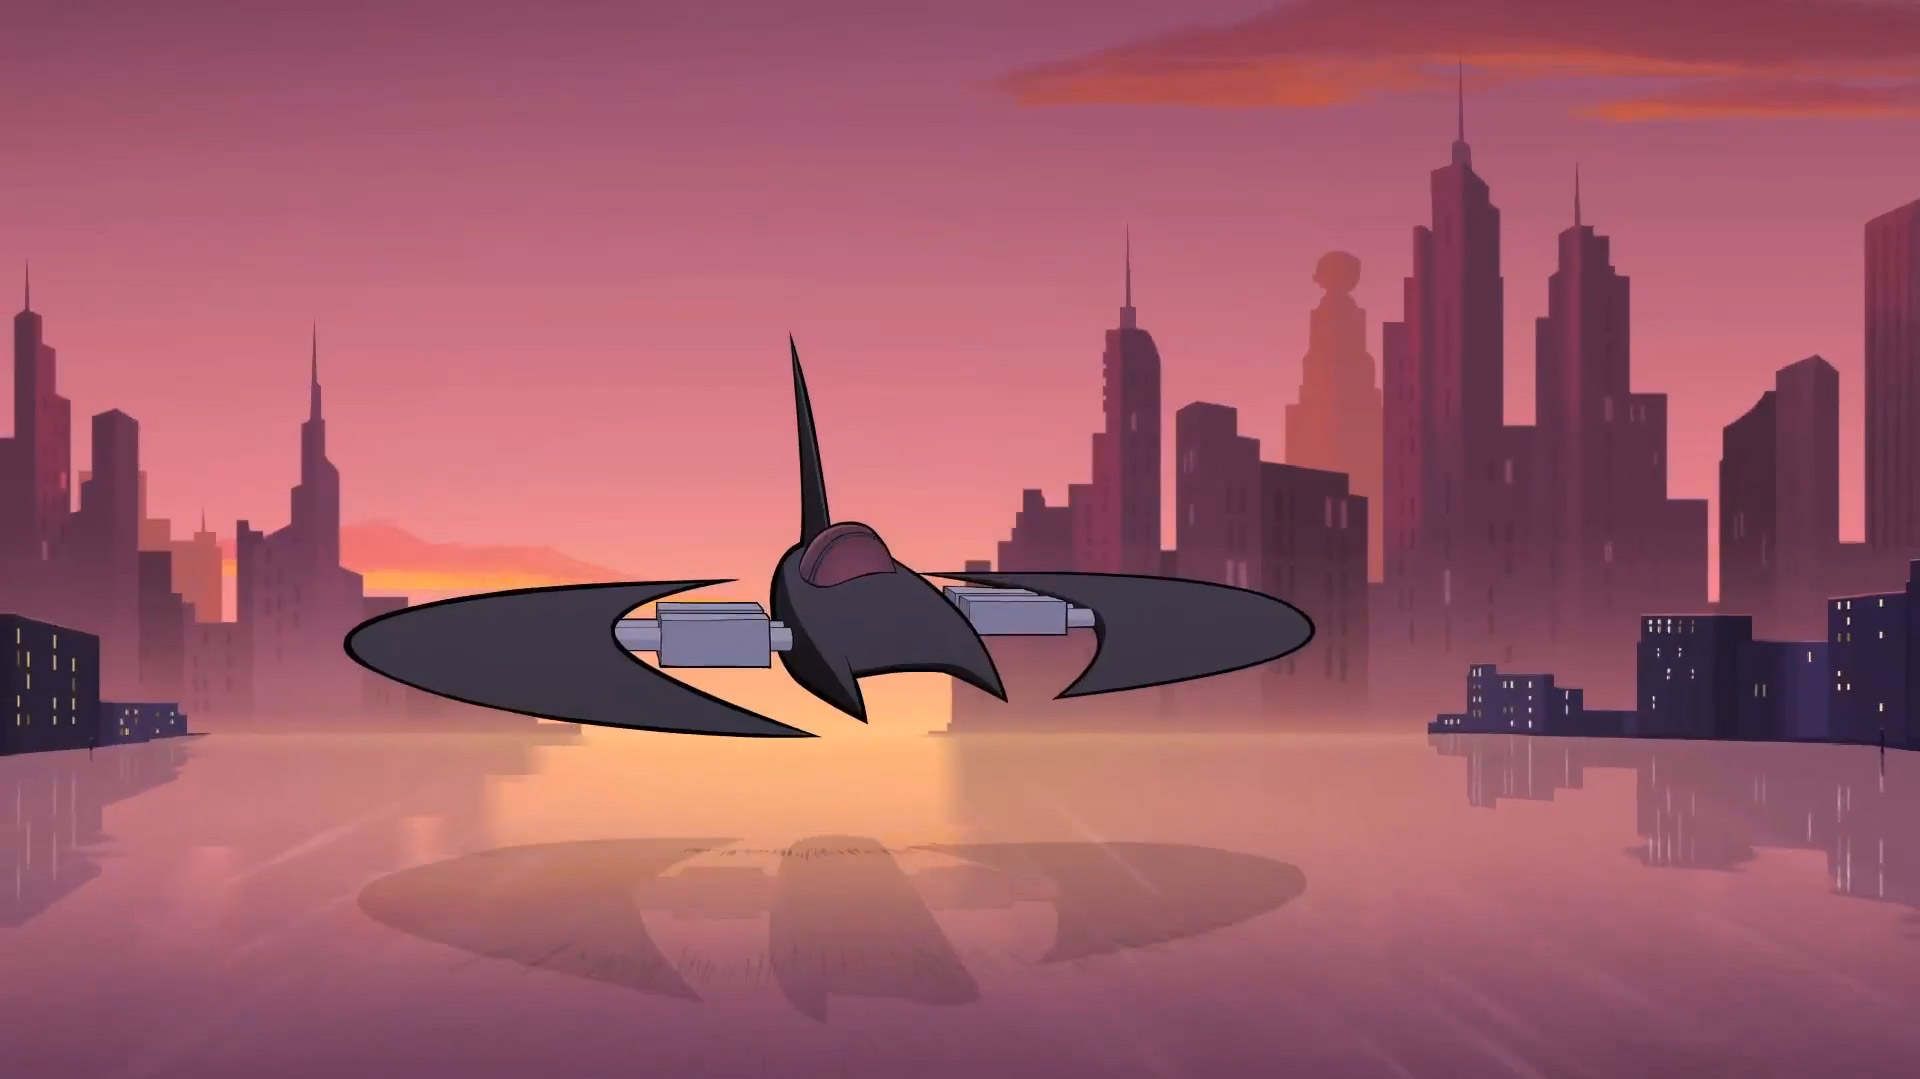 lois-lane-tries-to-interview-batman-in-animated-short-5.jpg